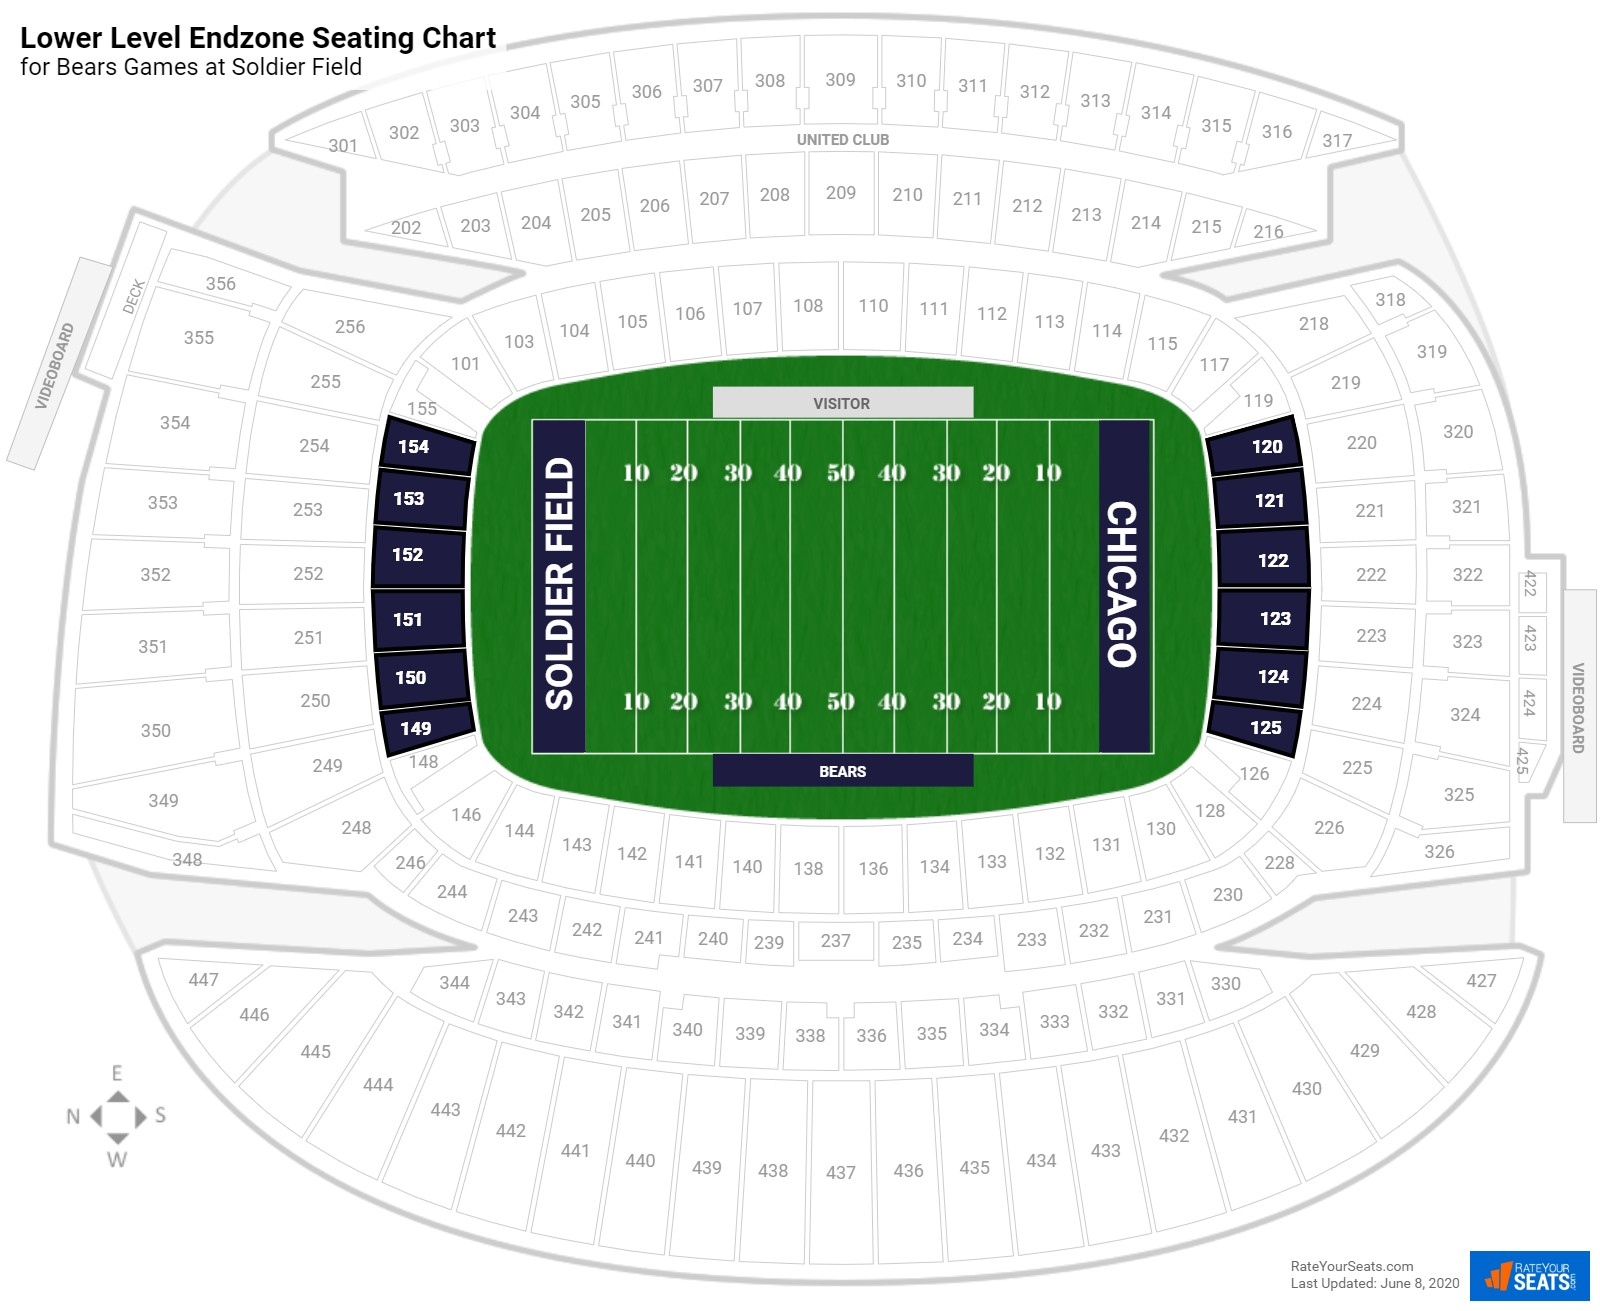 Soldier Field Lower Level Endzone seating chart